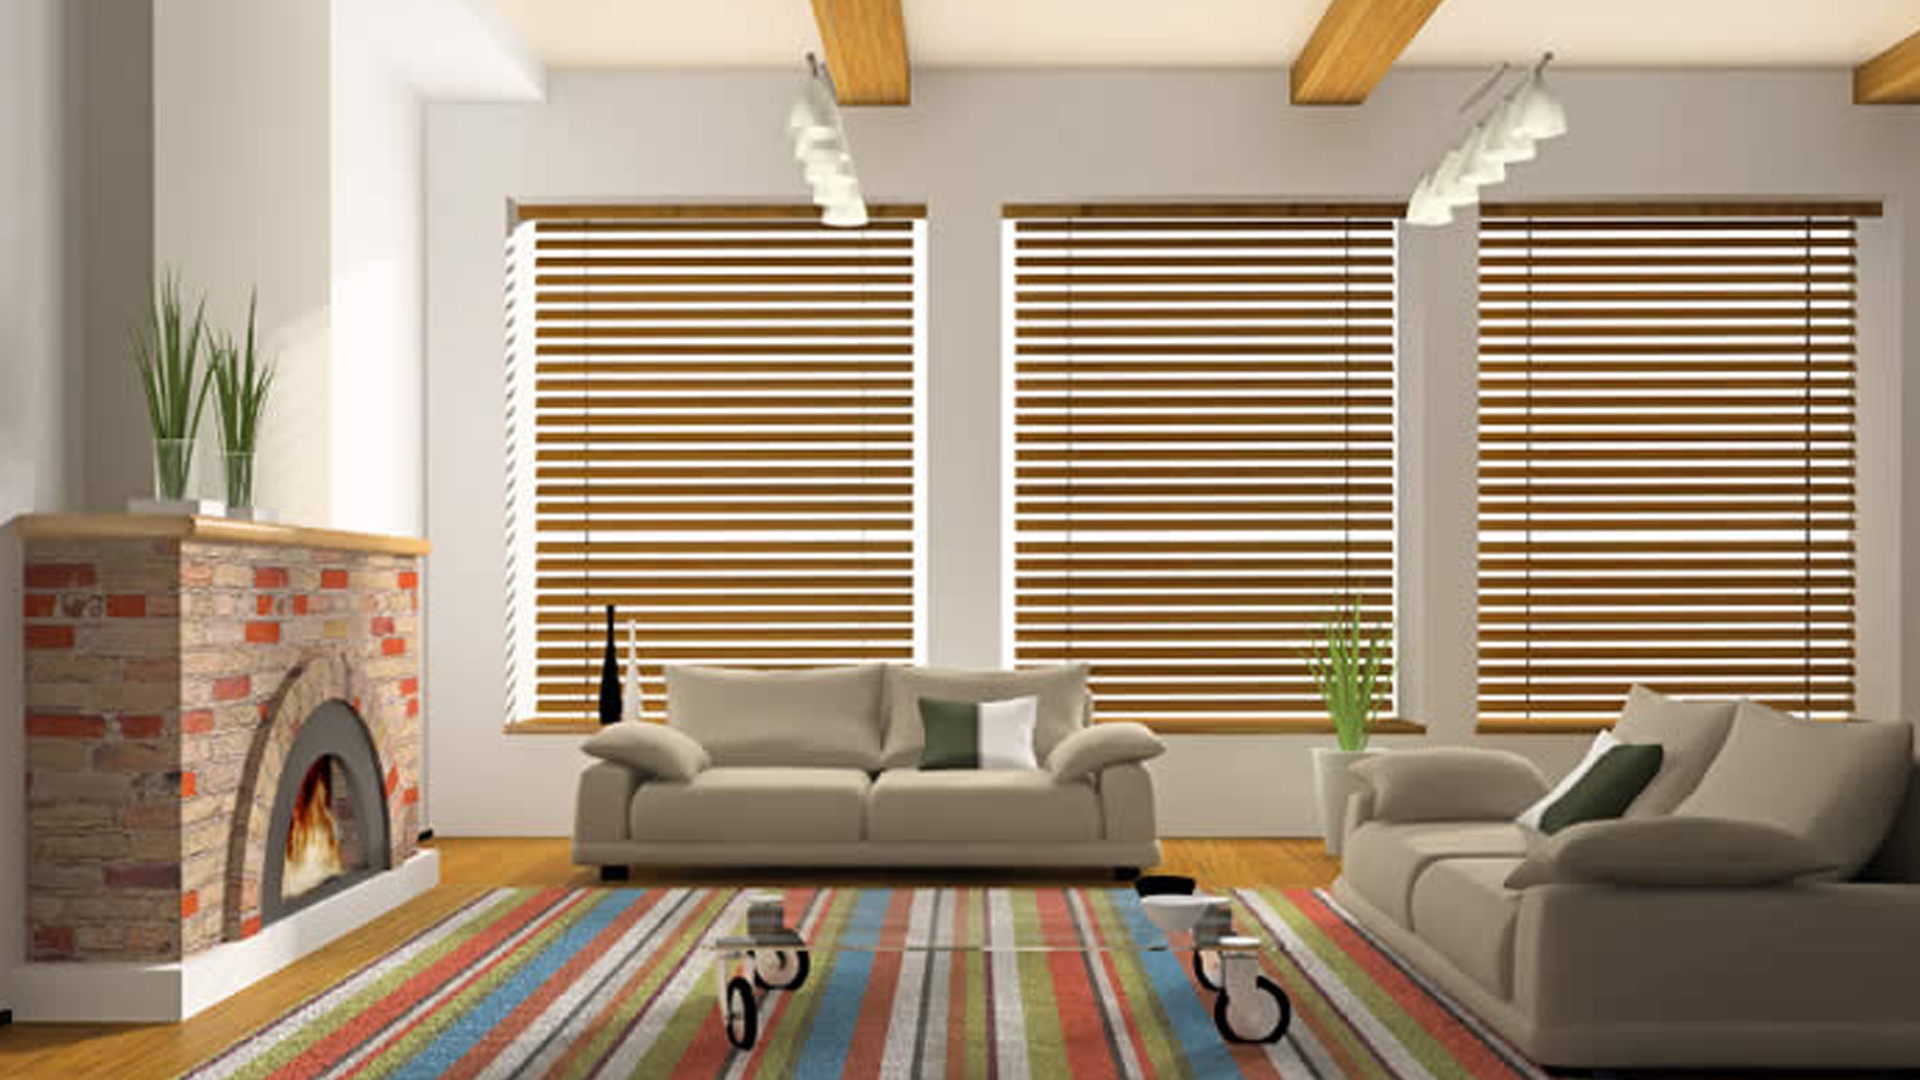 ALL BLINDS CO., LTD.